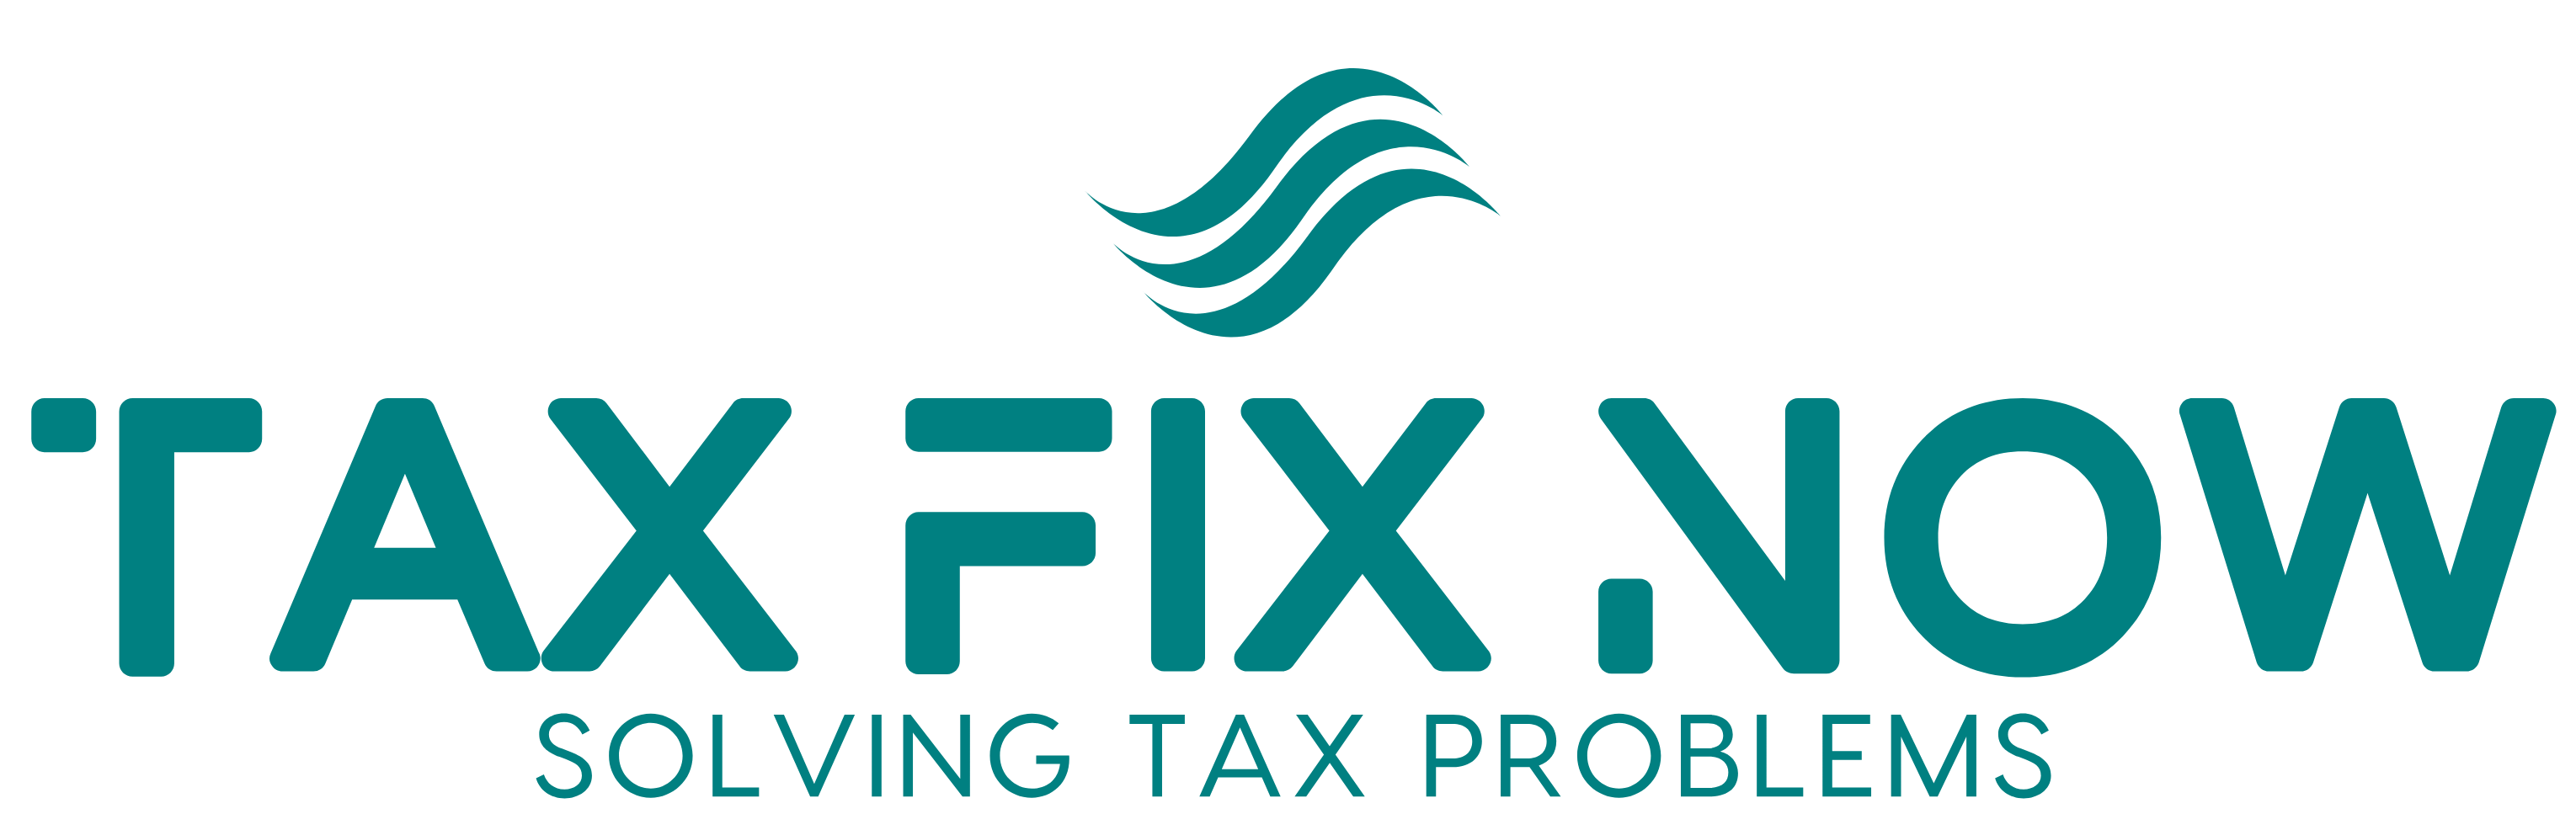 Highland Village, TX Bookkeeping Firm | Non-Filed Tax Returns Page | Tax Fix Now